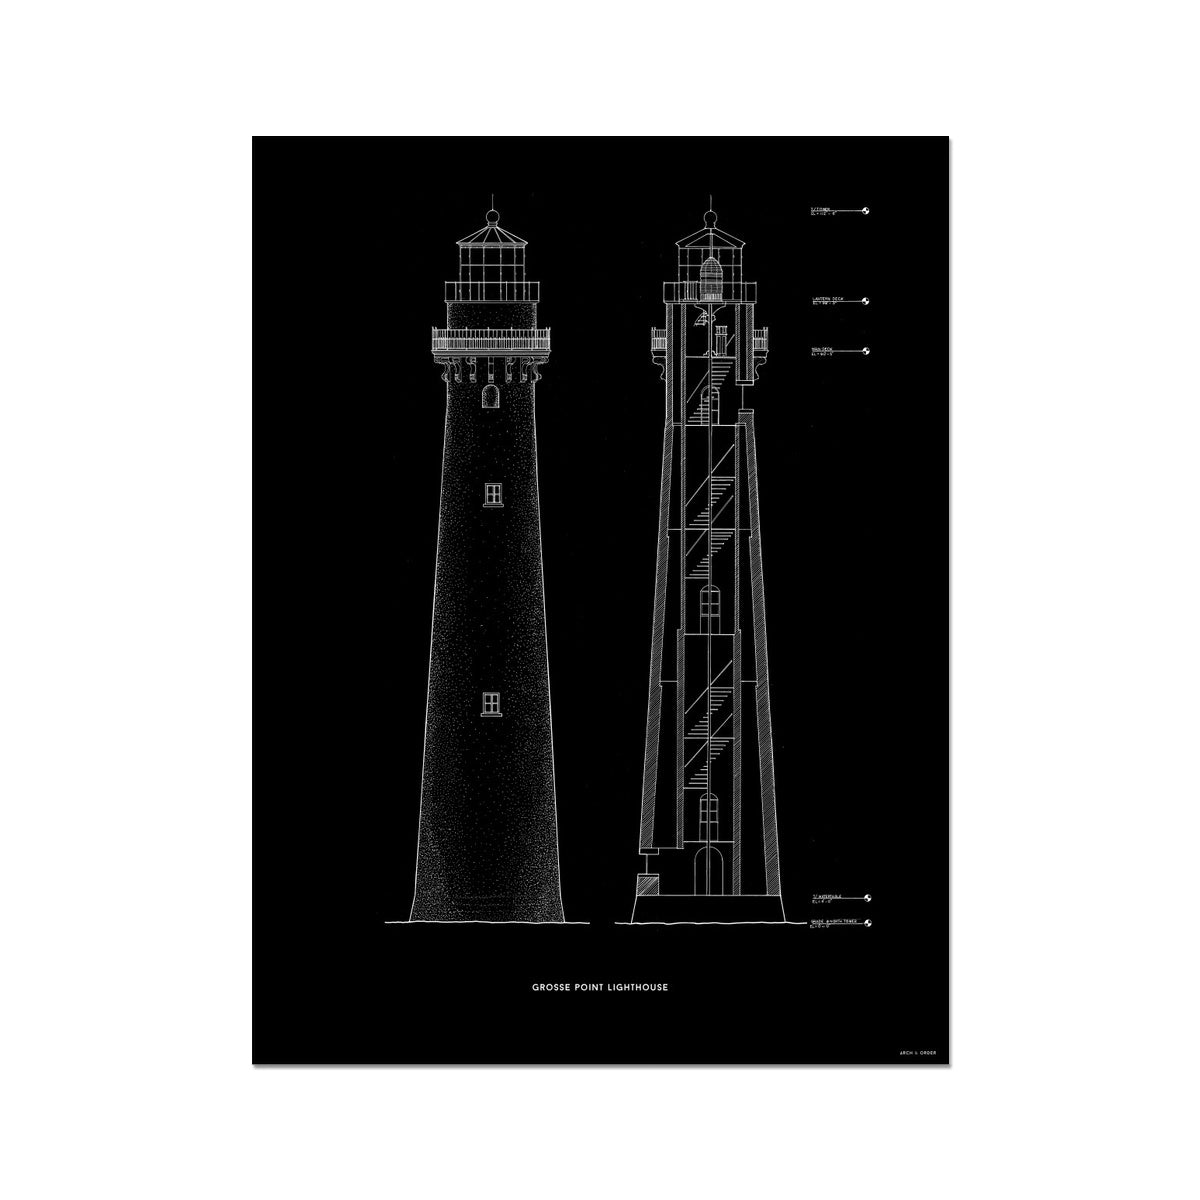 Grosse Point Lighthouse - East Elevation and Cross Section - Black - German Etching Print